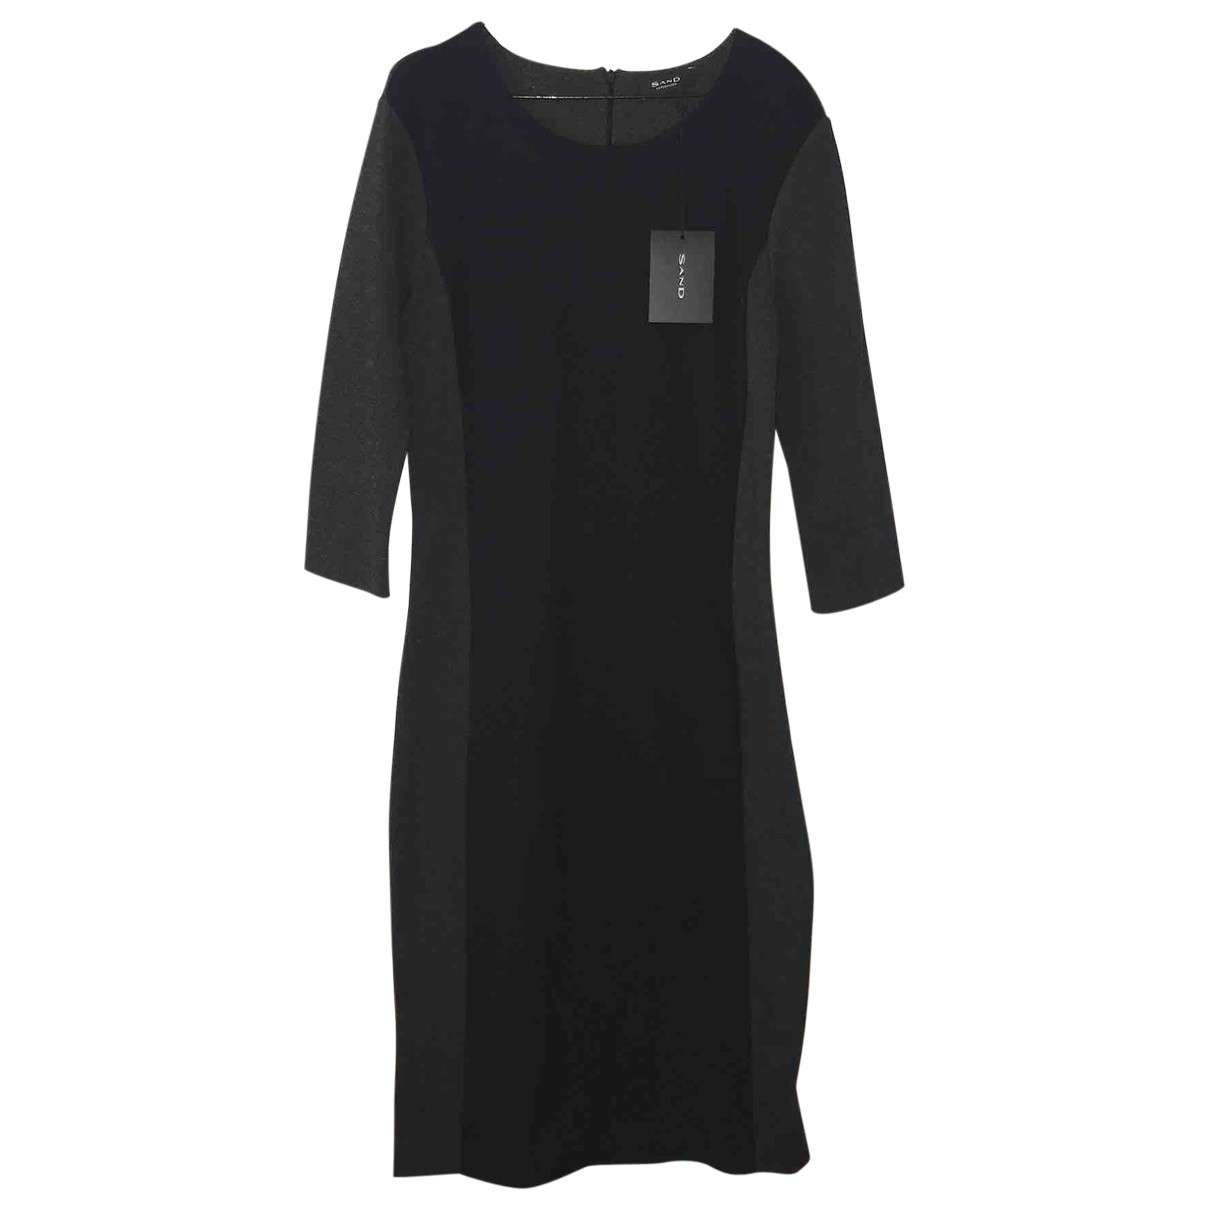 Sand \N Black dress for Women M International